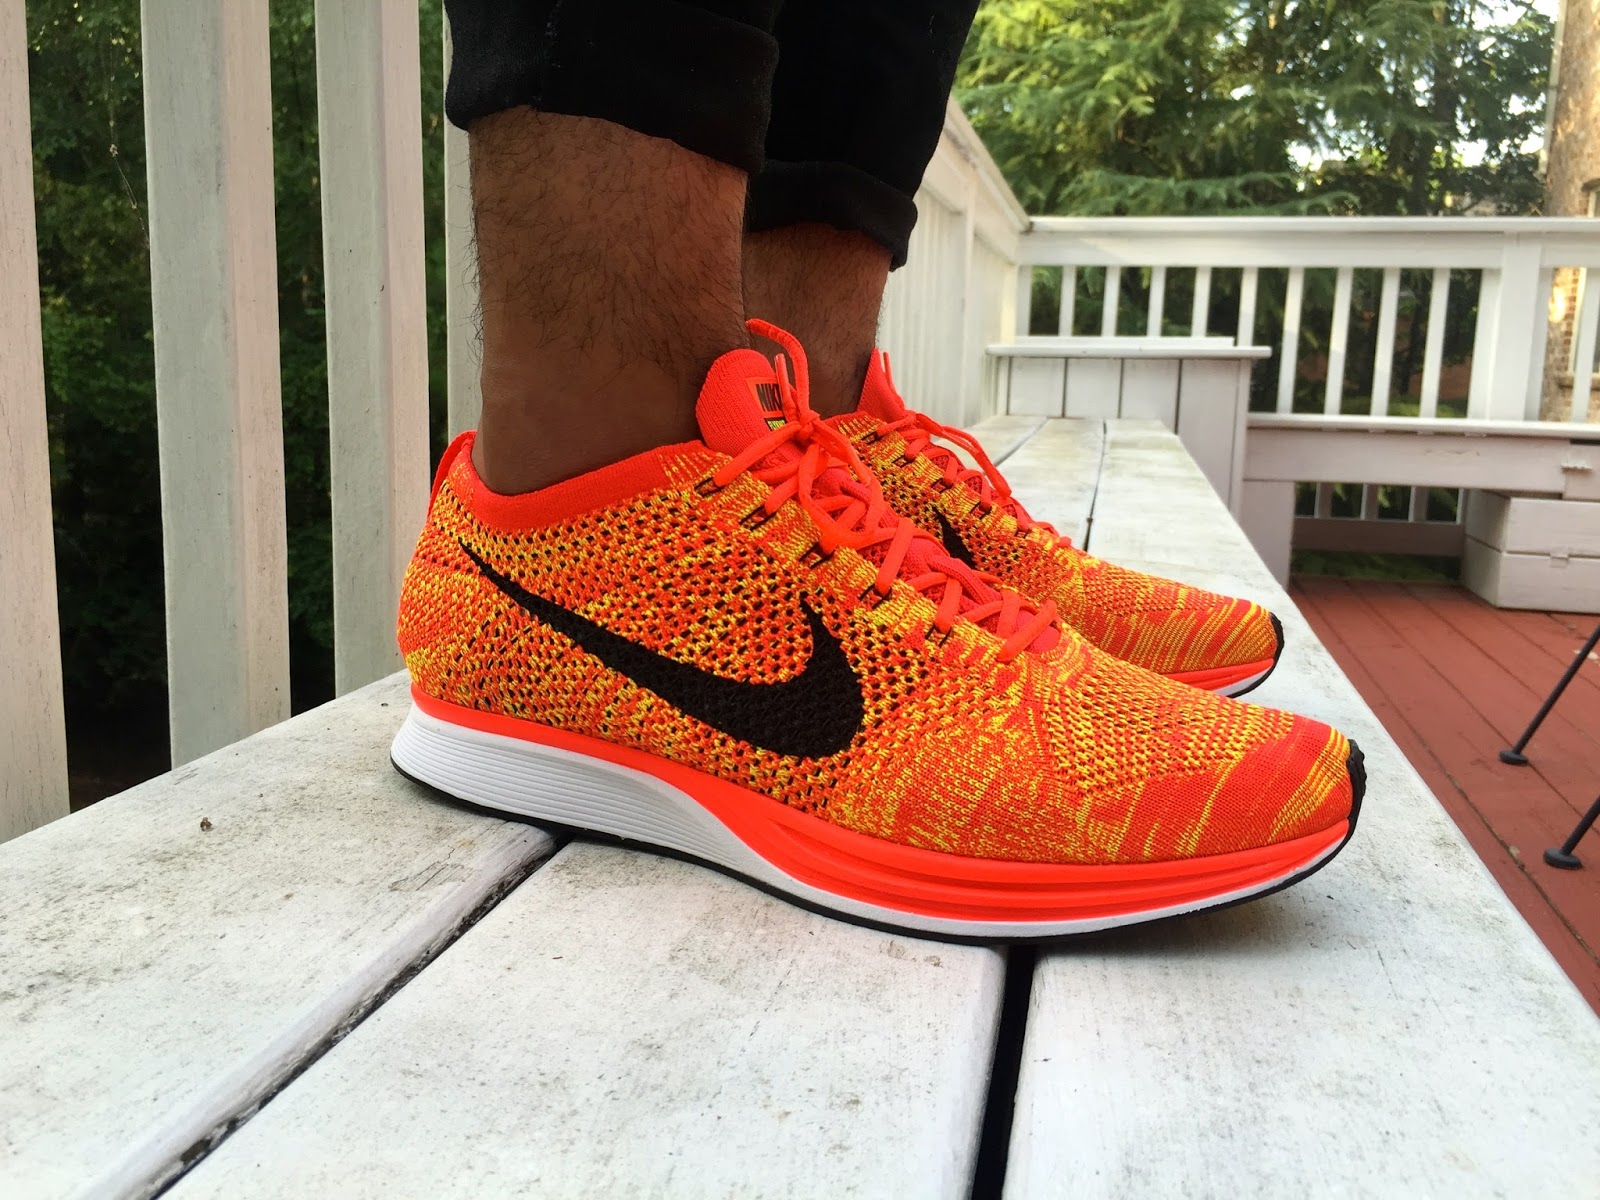 79ee969a98b88 Nike Flyknit Racer Orange Slice endeavouryachtservices.co.uk